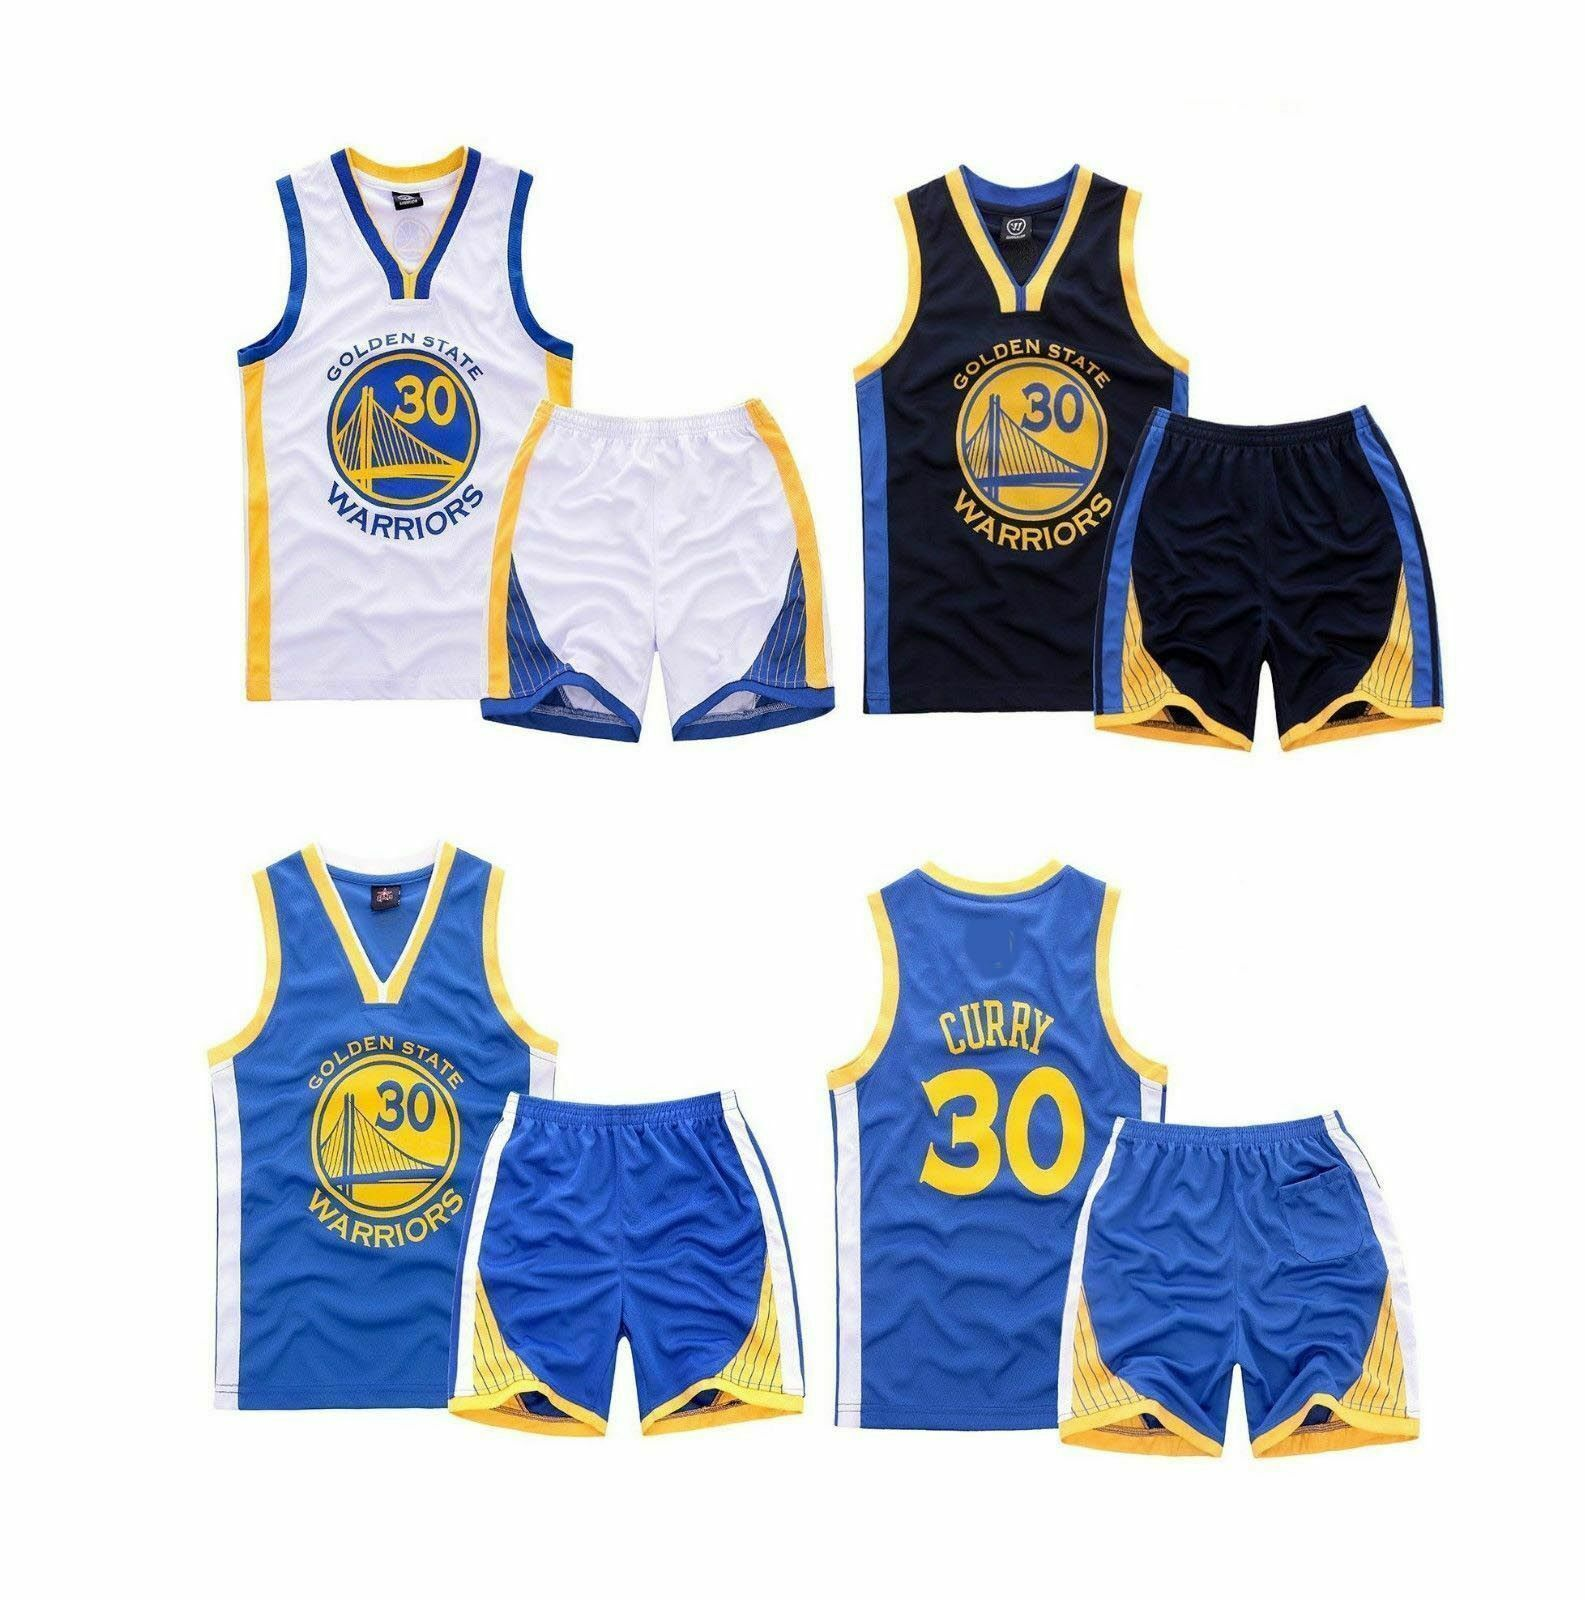 Kids Basketball Jerseys Set NBA Warriors #30 Curry Basketball Uniform Summer Shirt Vest Top Shorts for Boys and Girls